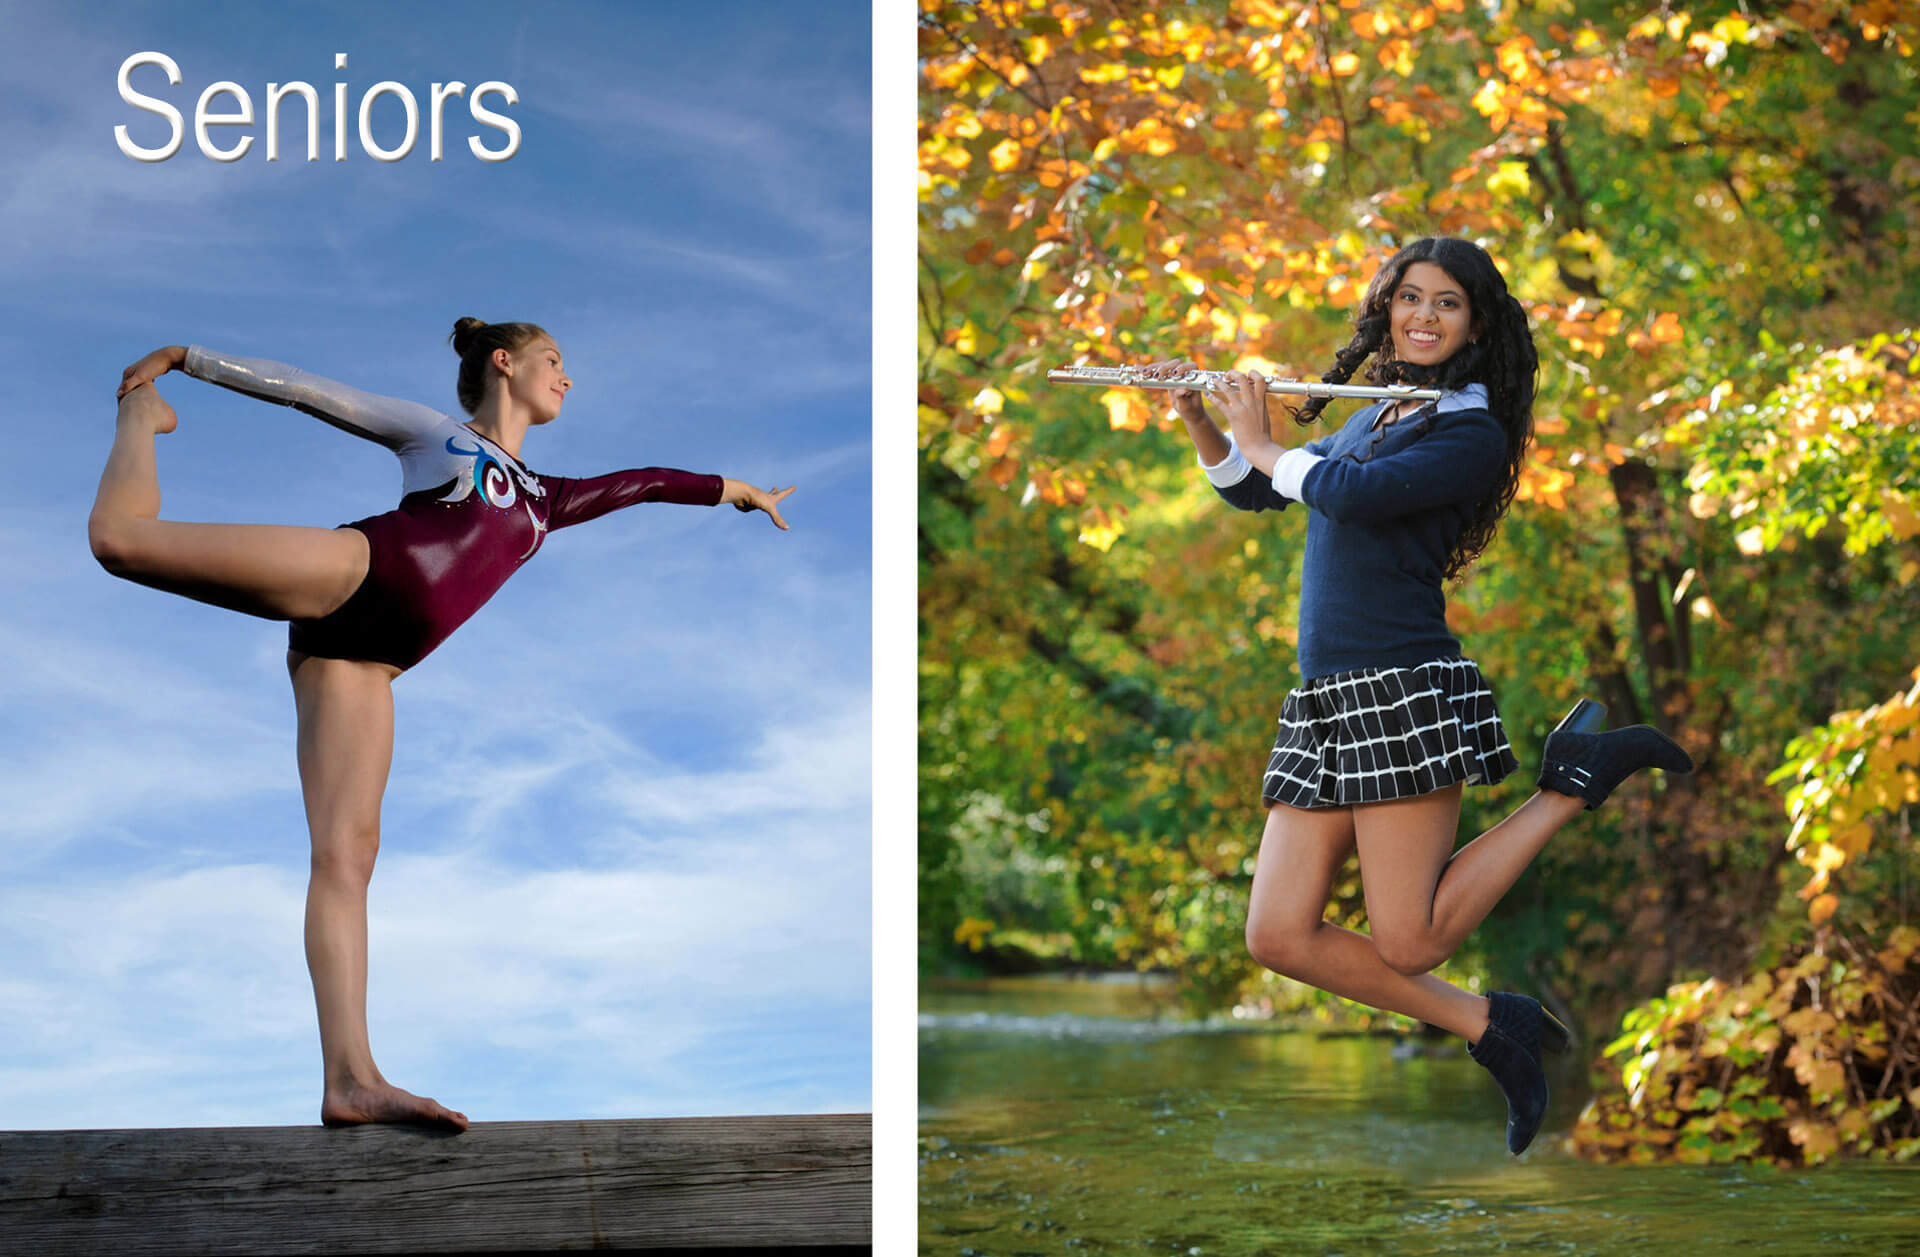 Rochester, Michigan senior photos that tell stories of each senior's talents and interest like this gymnastics senior photo in Rochester Michigan and a band senior photo of a flute player from Troy Michigan.